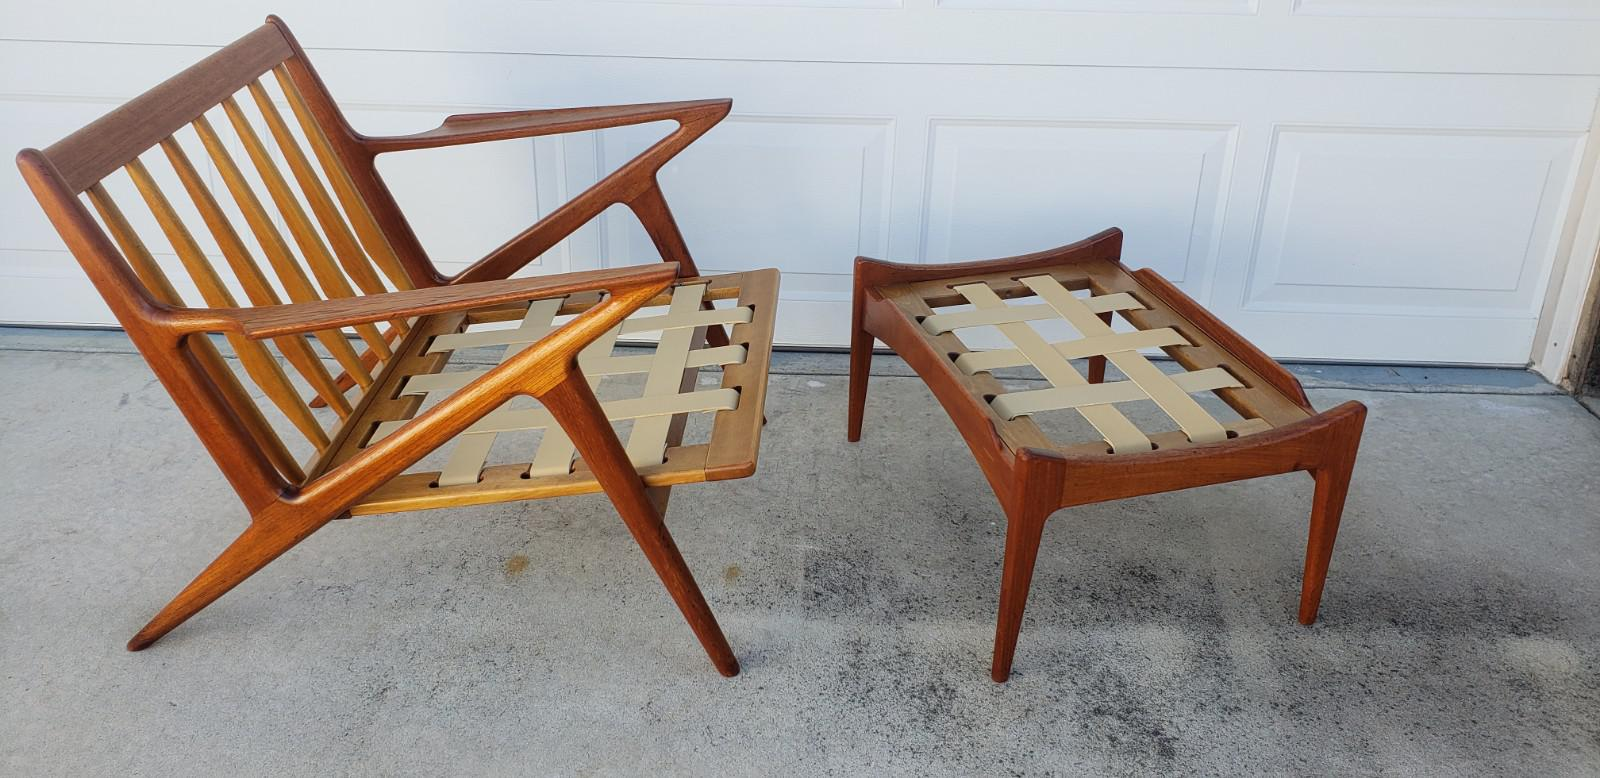 z chair mid century kitchen stuff plus dining modern teak and ottoman chairish 1960s for sale image 5